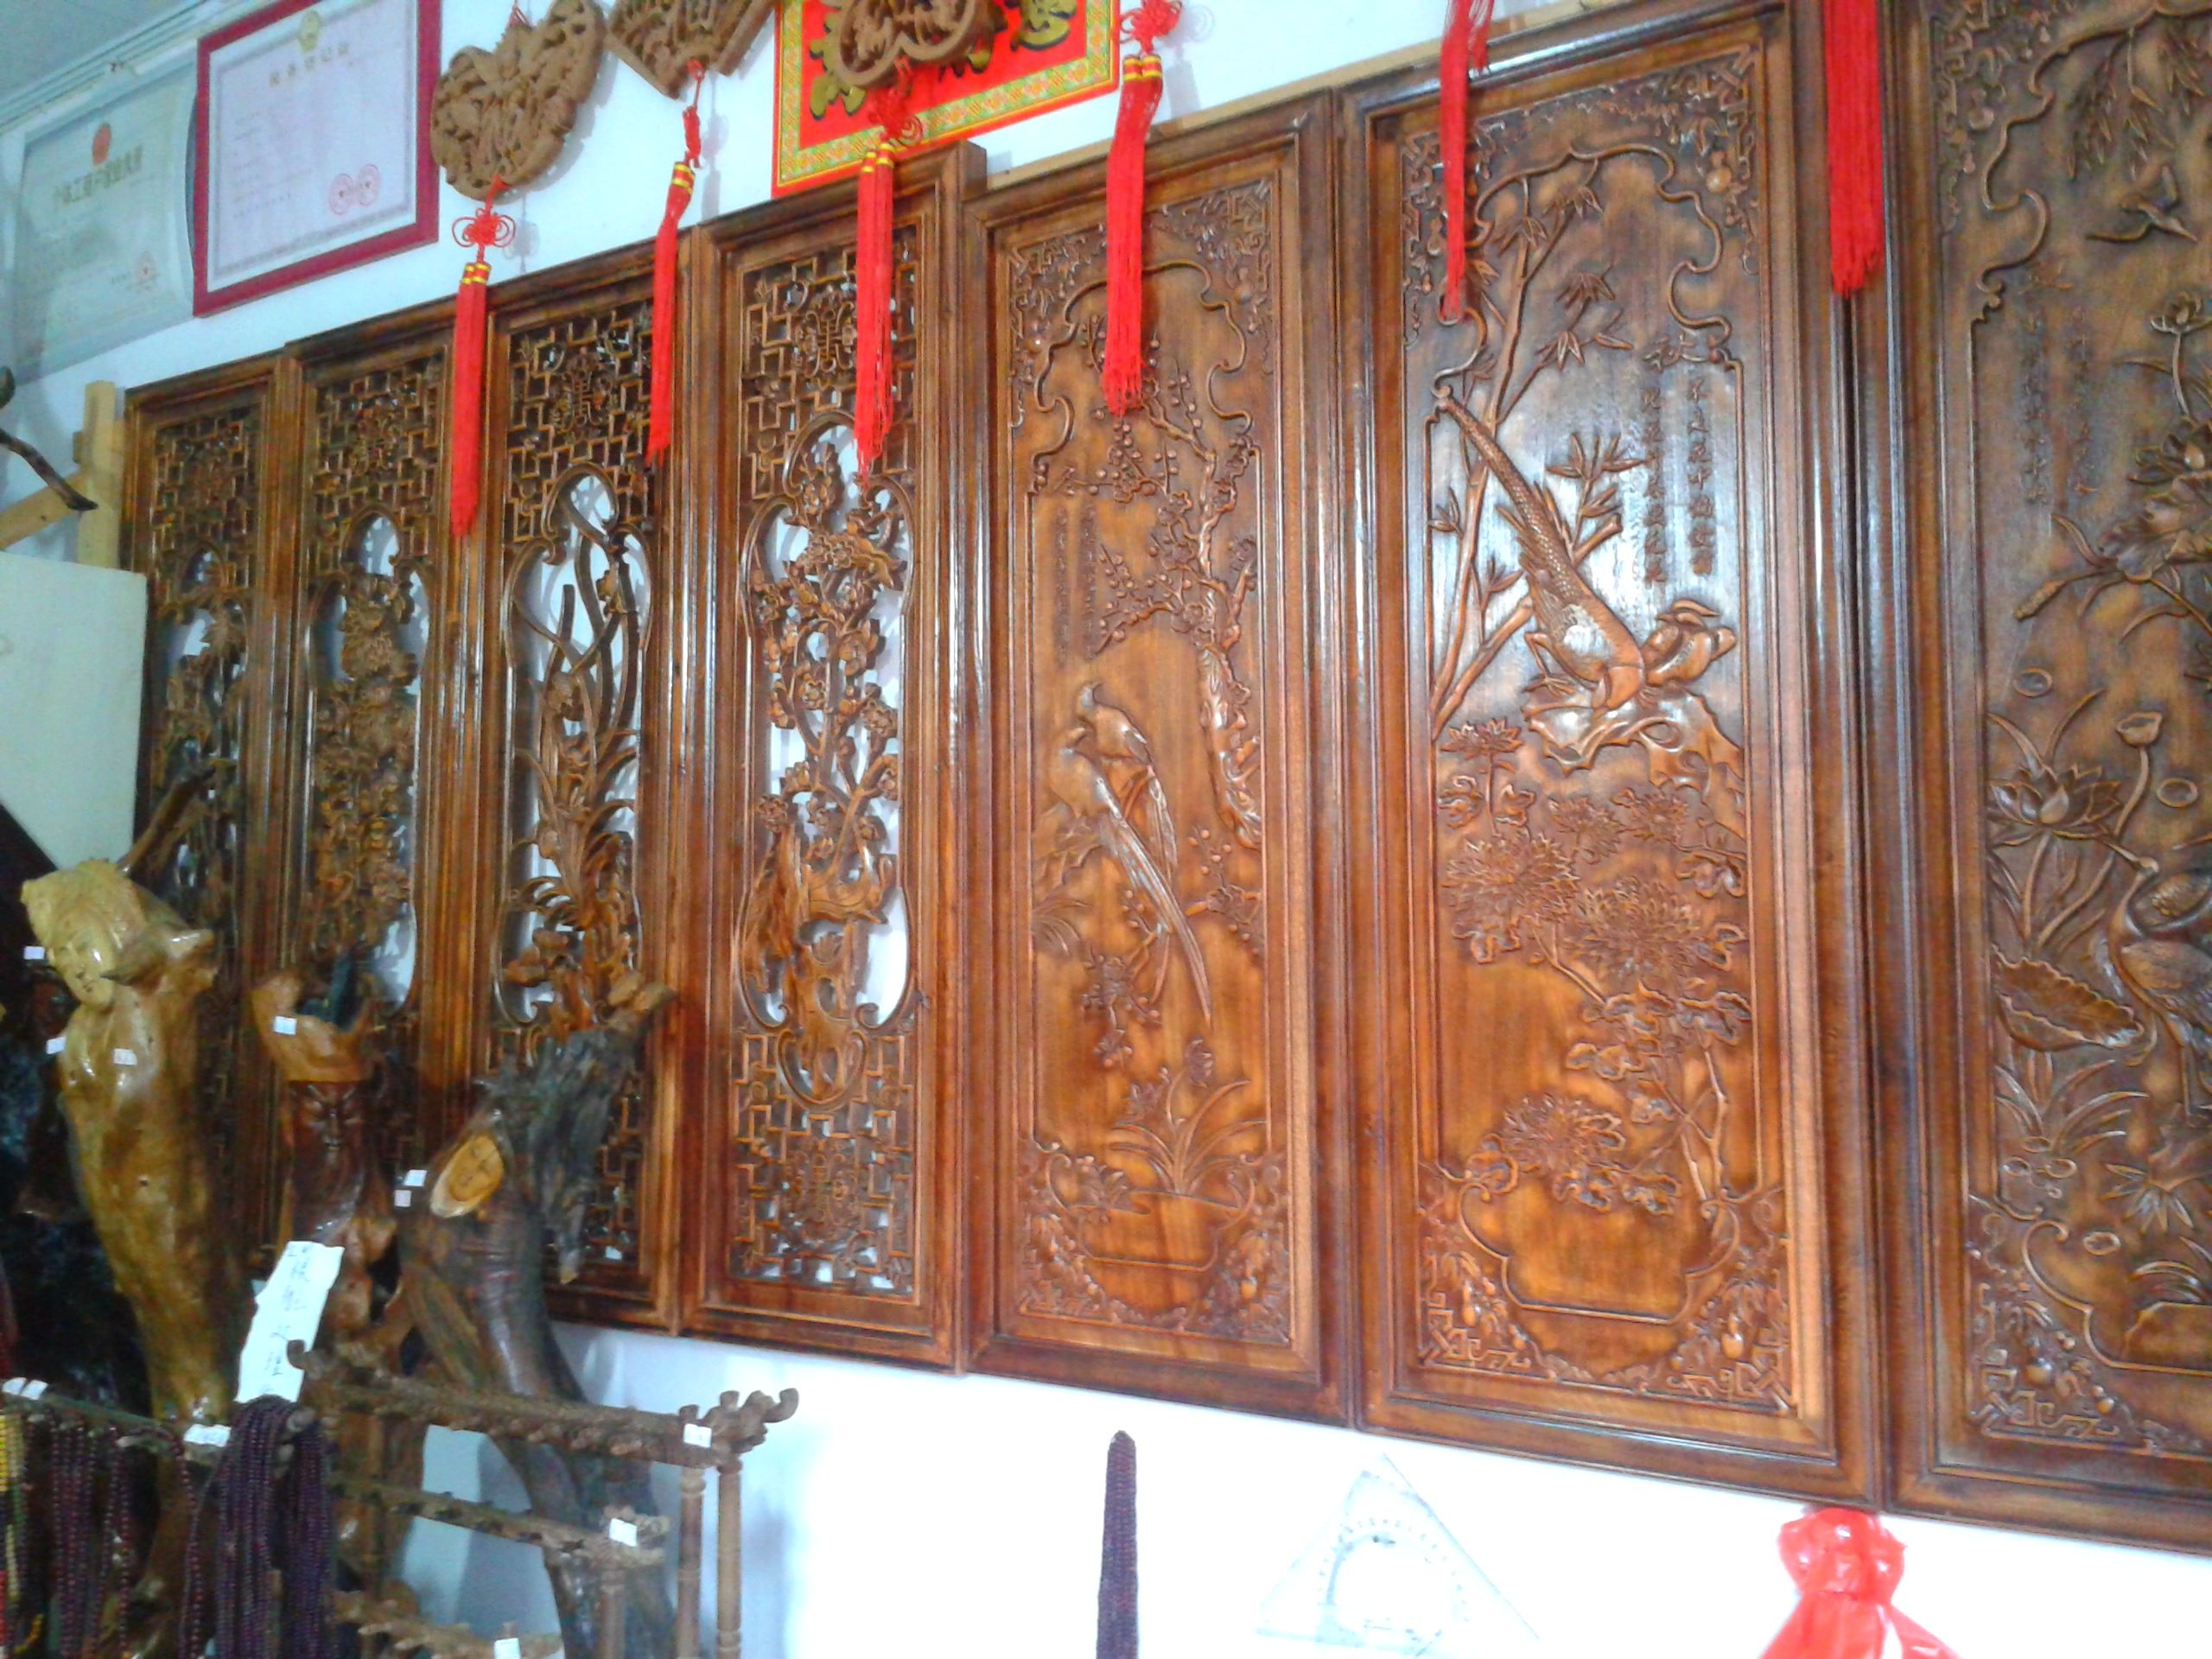 Some hand carved wood paneling you can find for sale here in Qiantong Ancient Town.